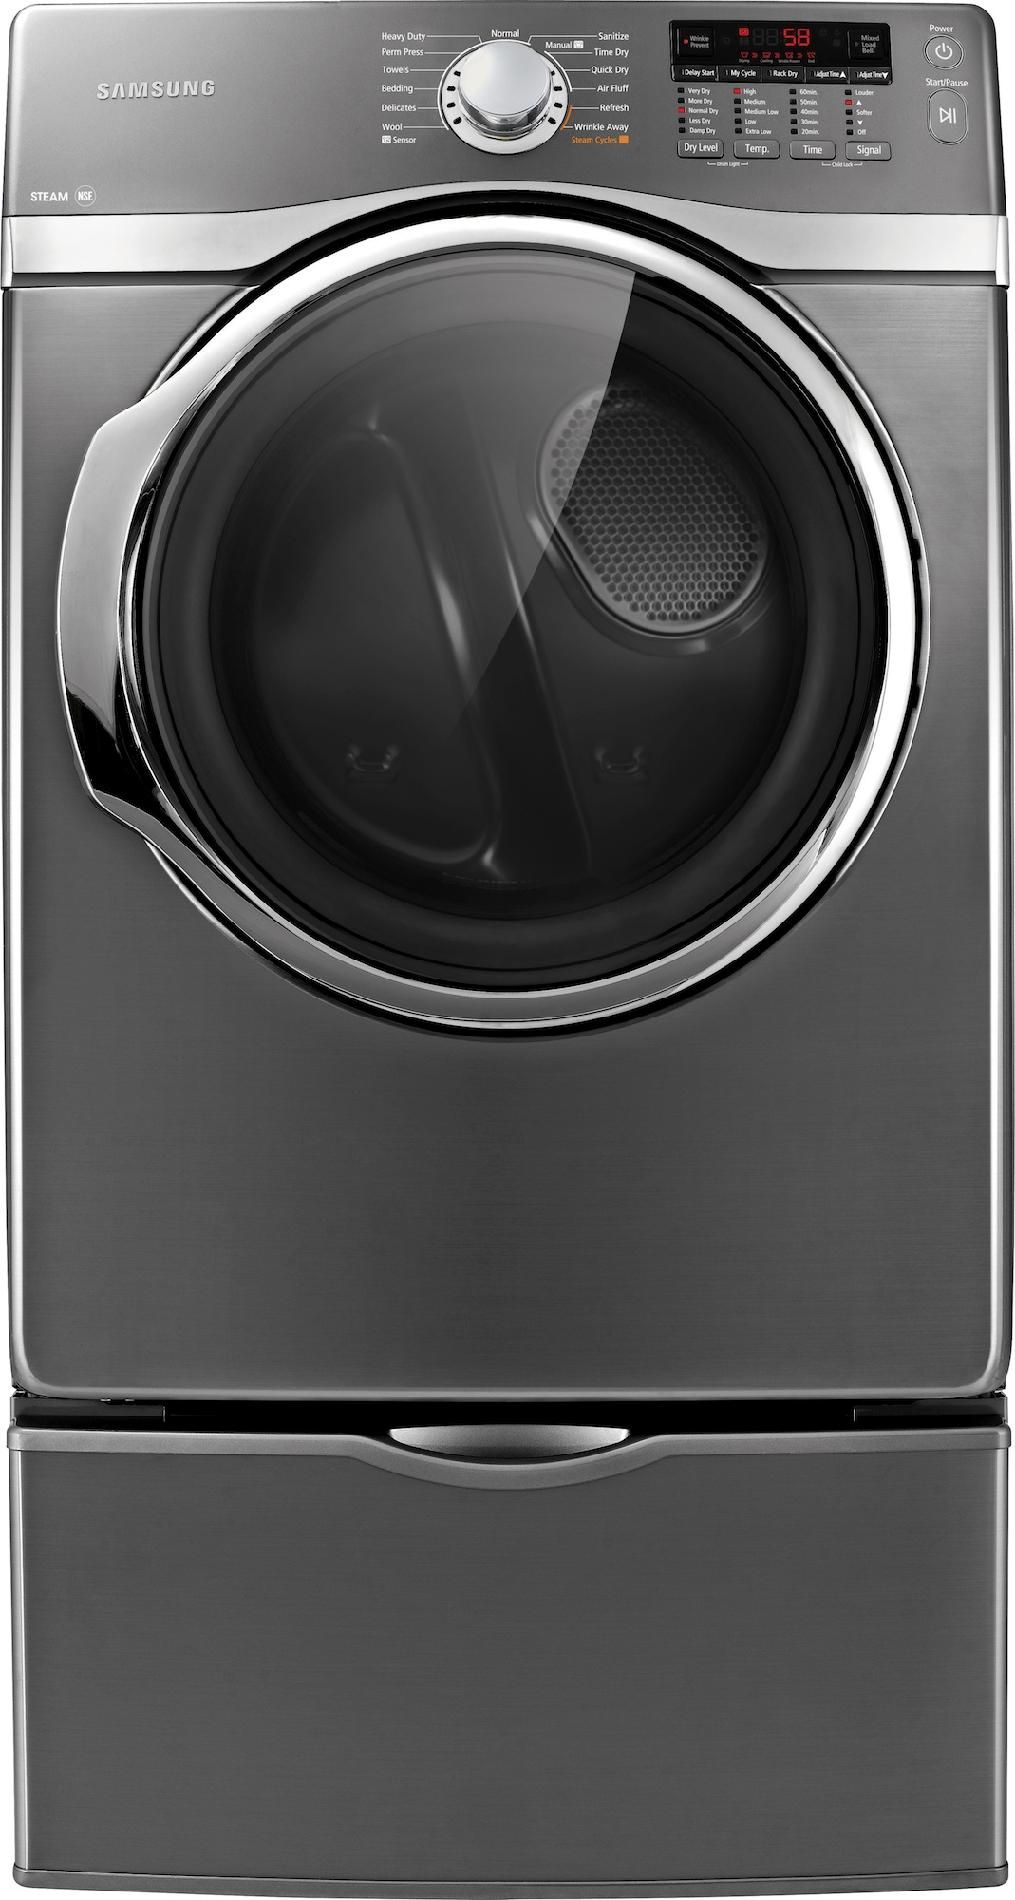 Samsung 7.4 cu. ft. Steam Electric Dryer - Stainless Platinum